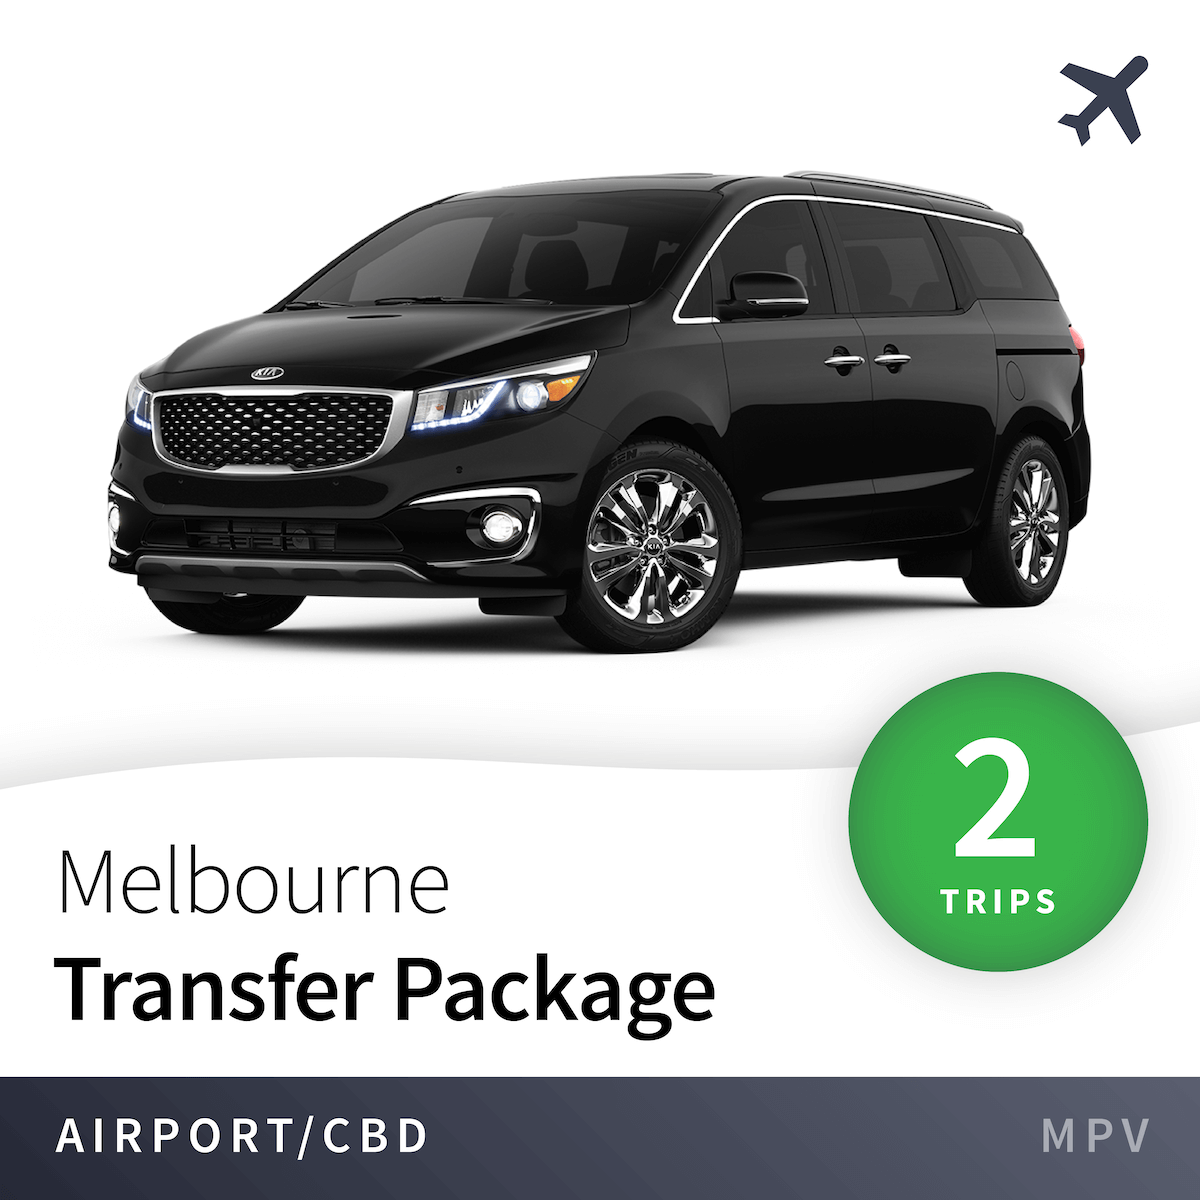 Melbourne Airport Transfer Package - MPV (2 Trips) 8